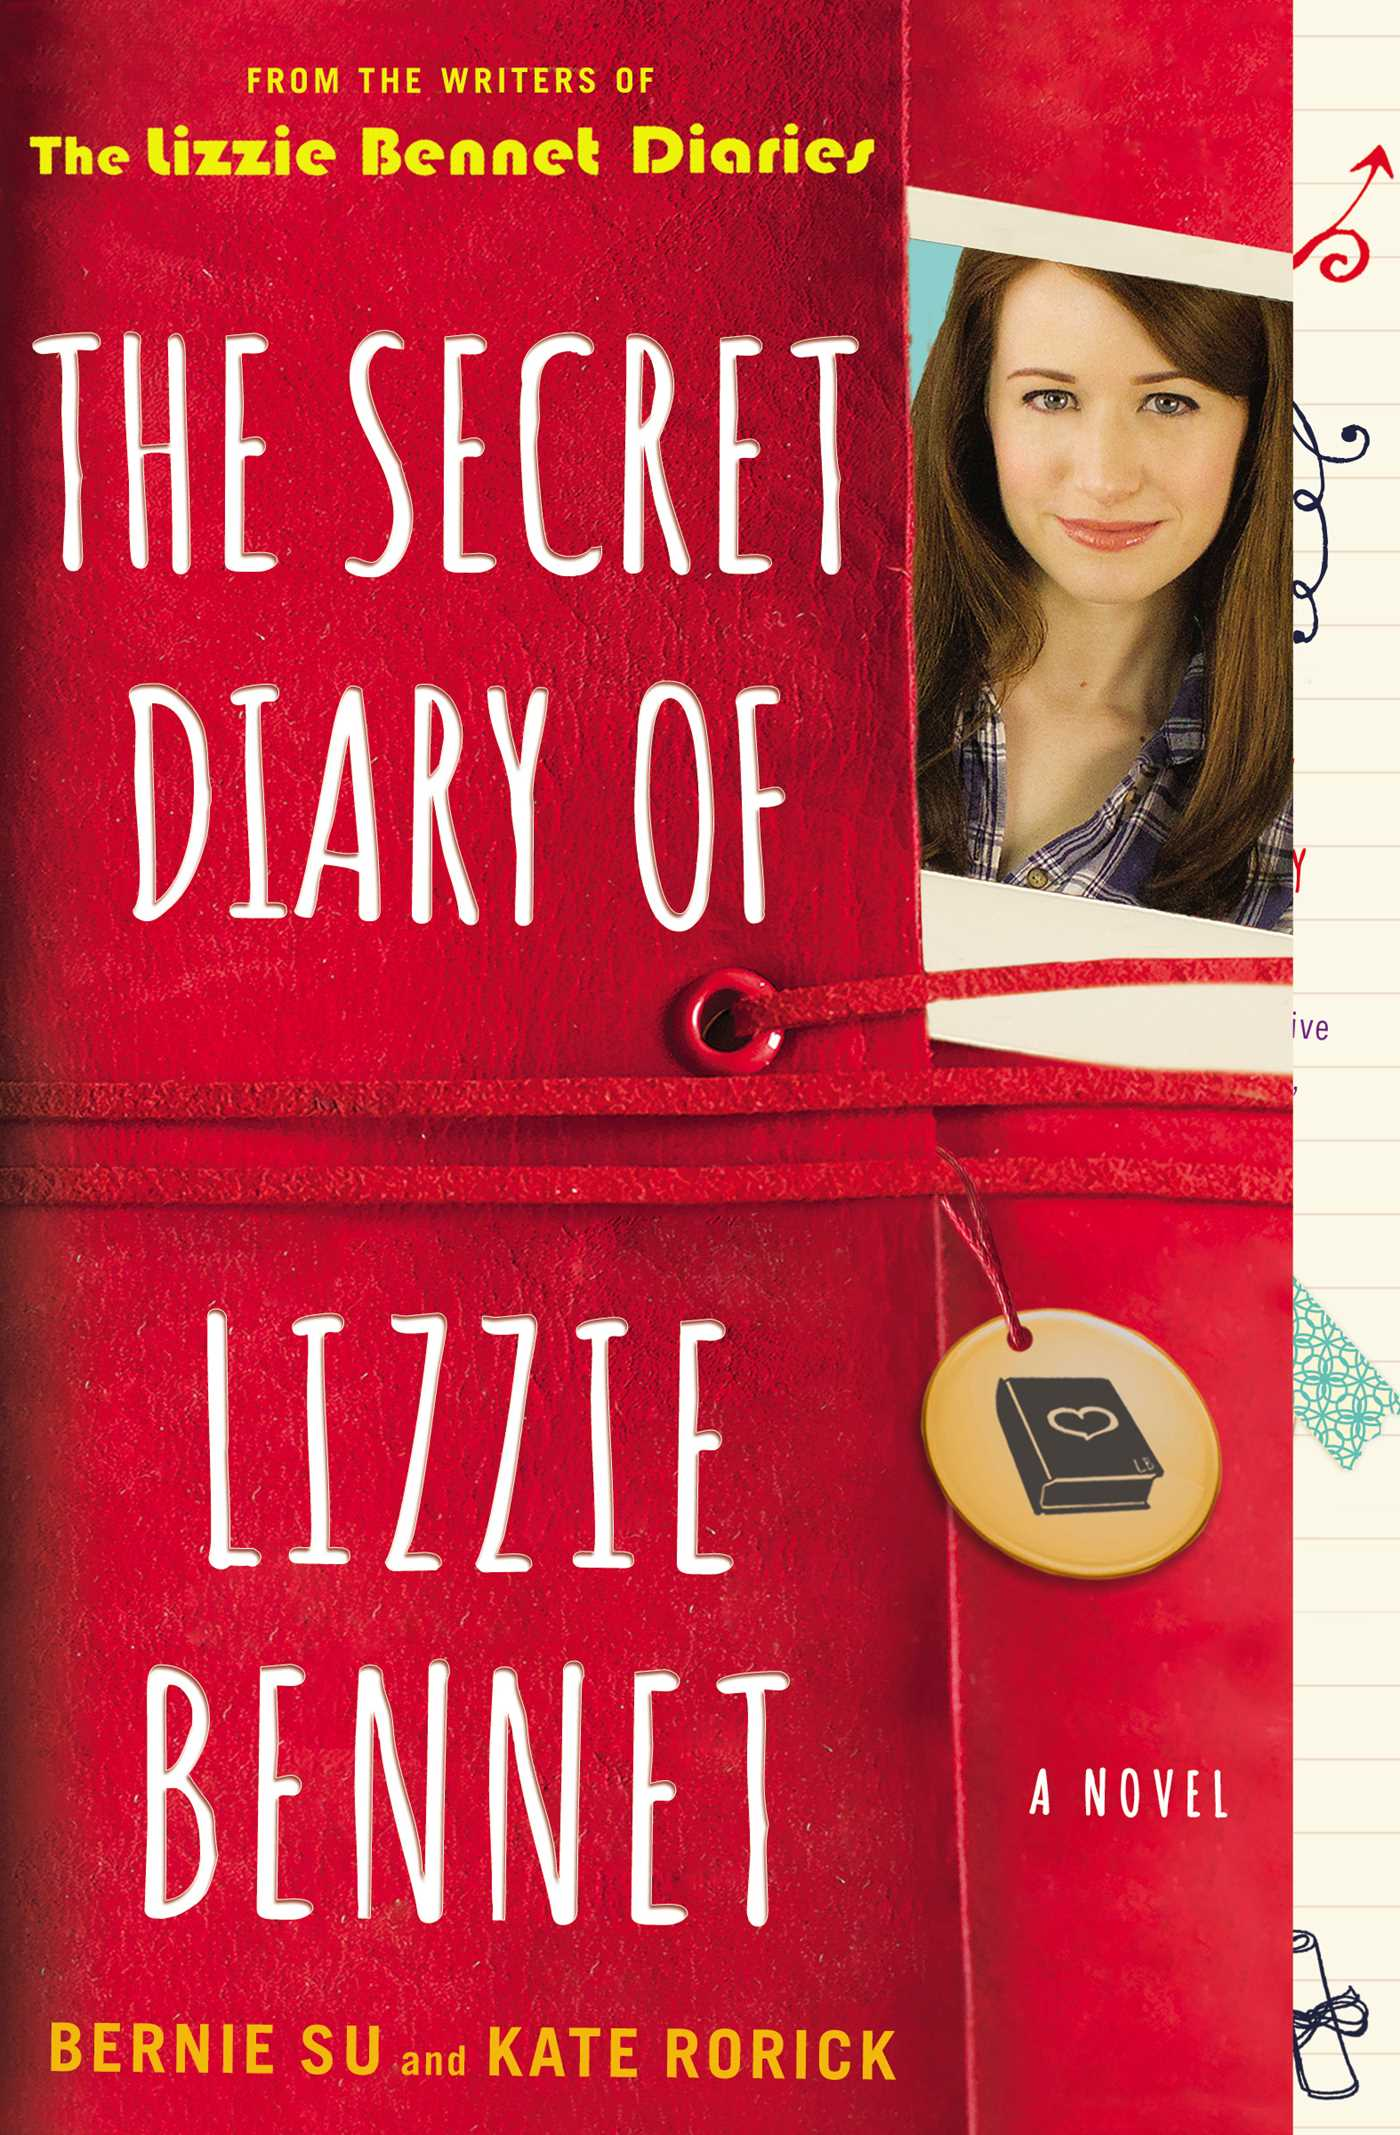 The-secret-diary-of-lizzie-bennet-9781476763217_hr